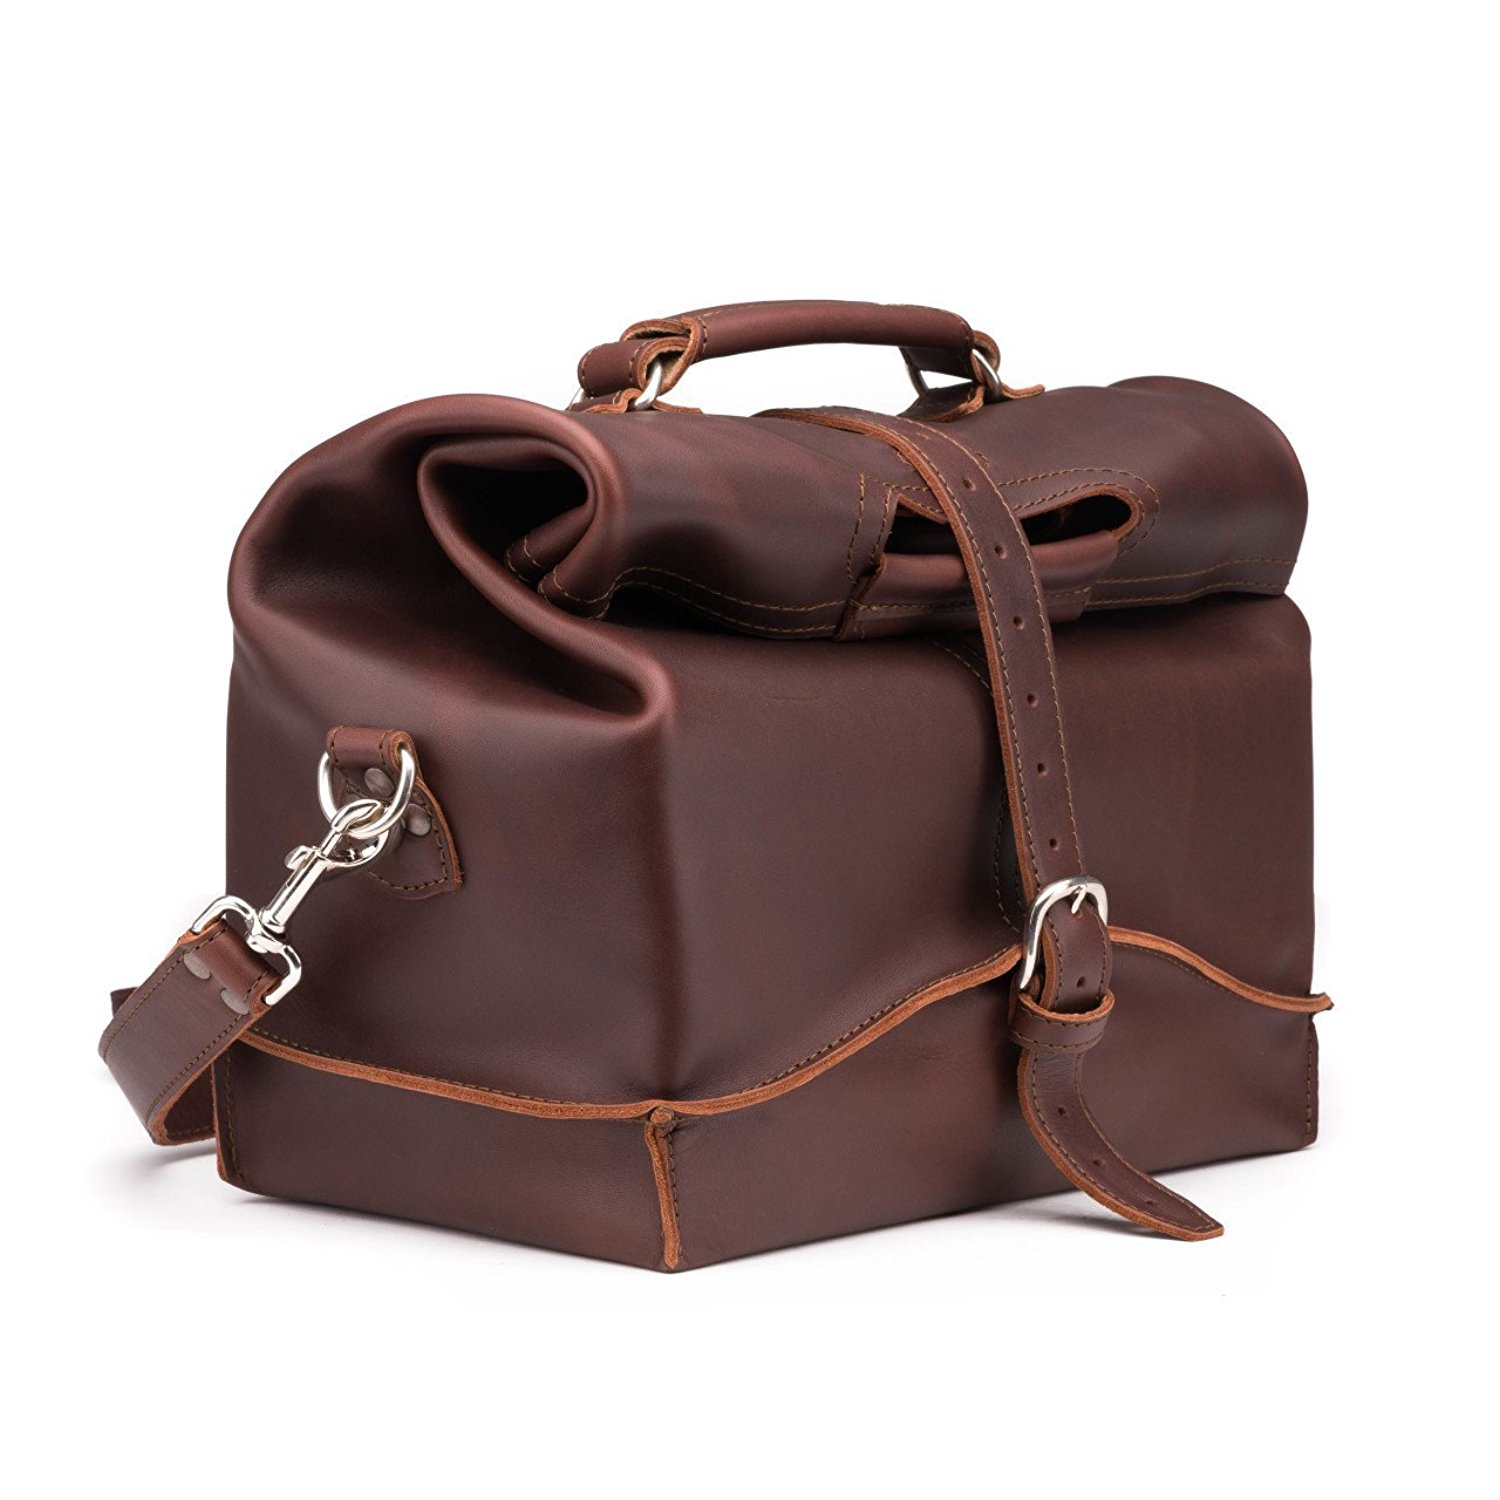 862a285333 Get Quotations · Saddleback Leather Overnight Bag - Full Grain Leather  Carry On - 100 Year Warranty